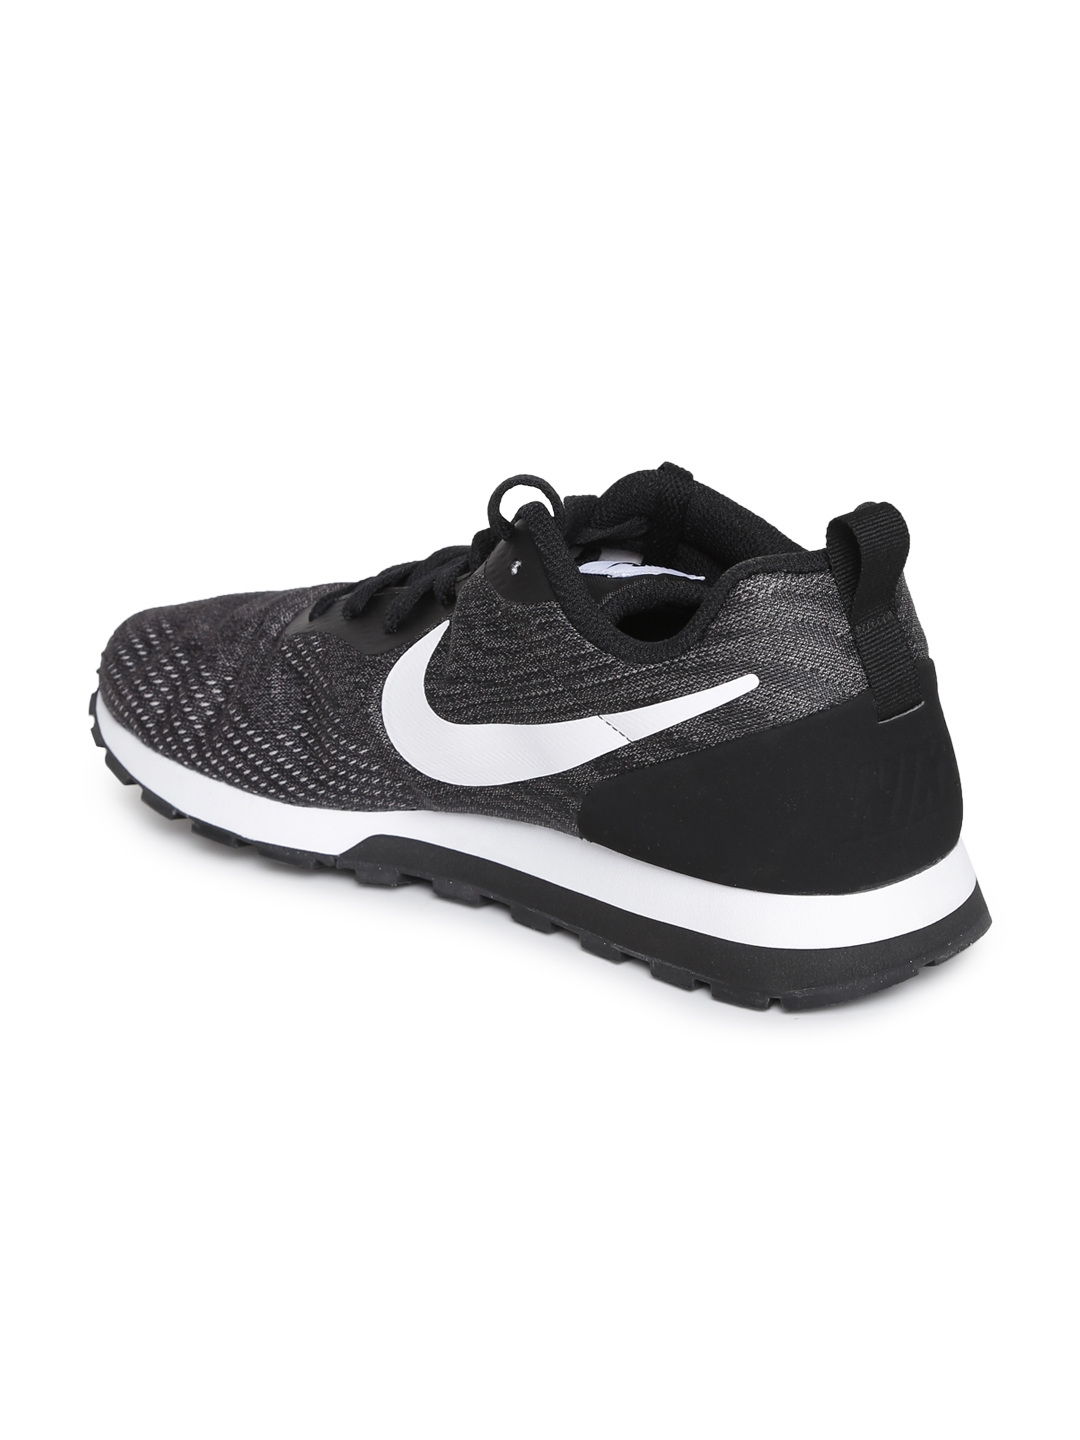 best cheap fb0a6 66257 11513322354090-Nike-Men-Casual-Shoes-1901513322354013-2.jpg